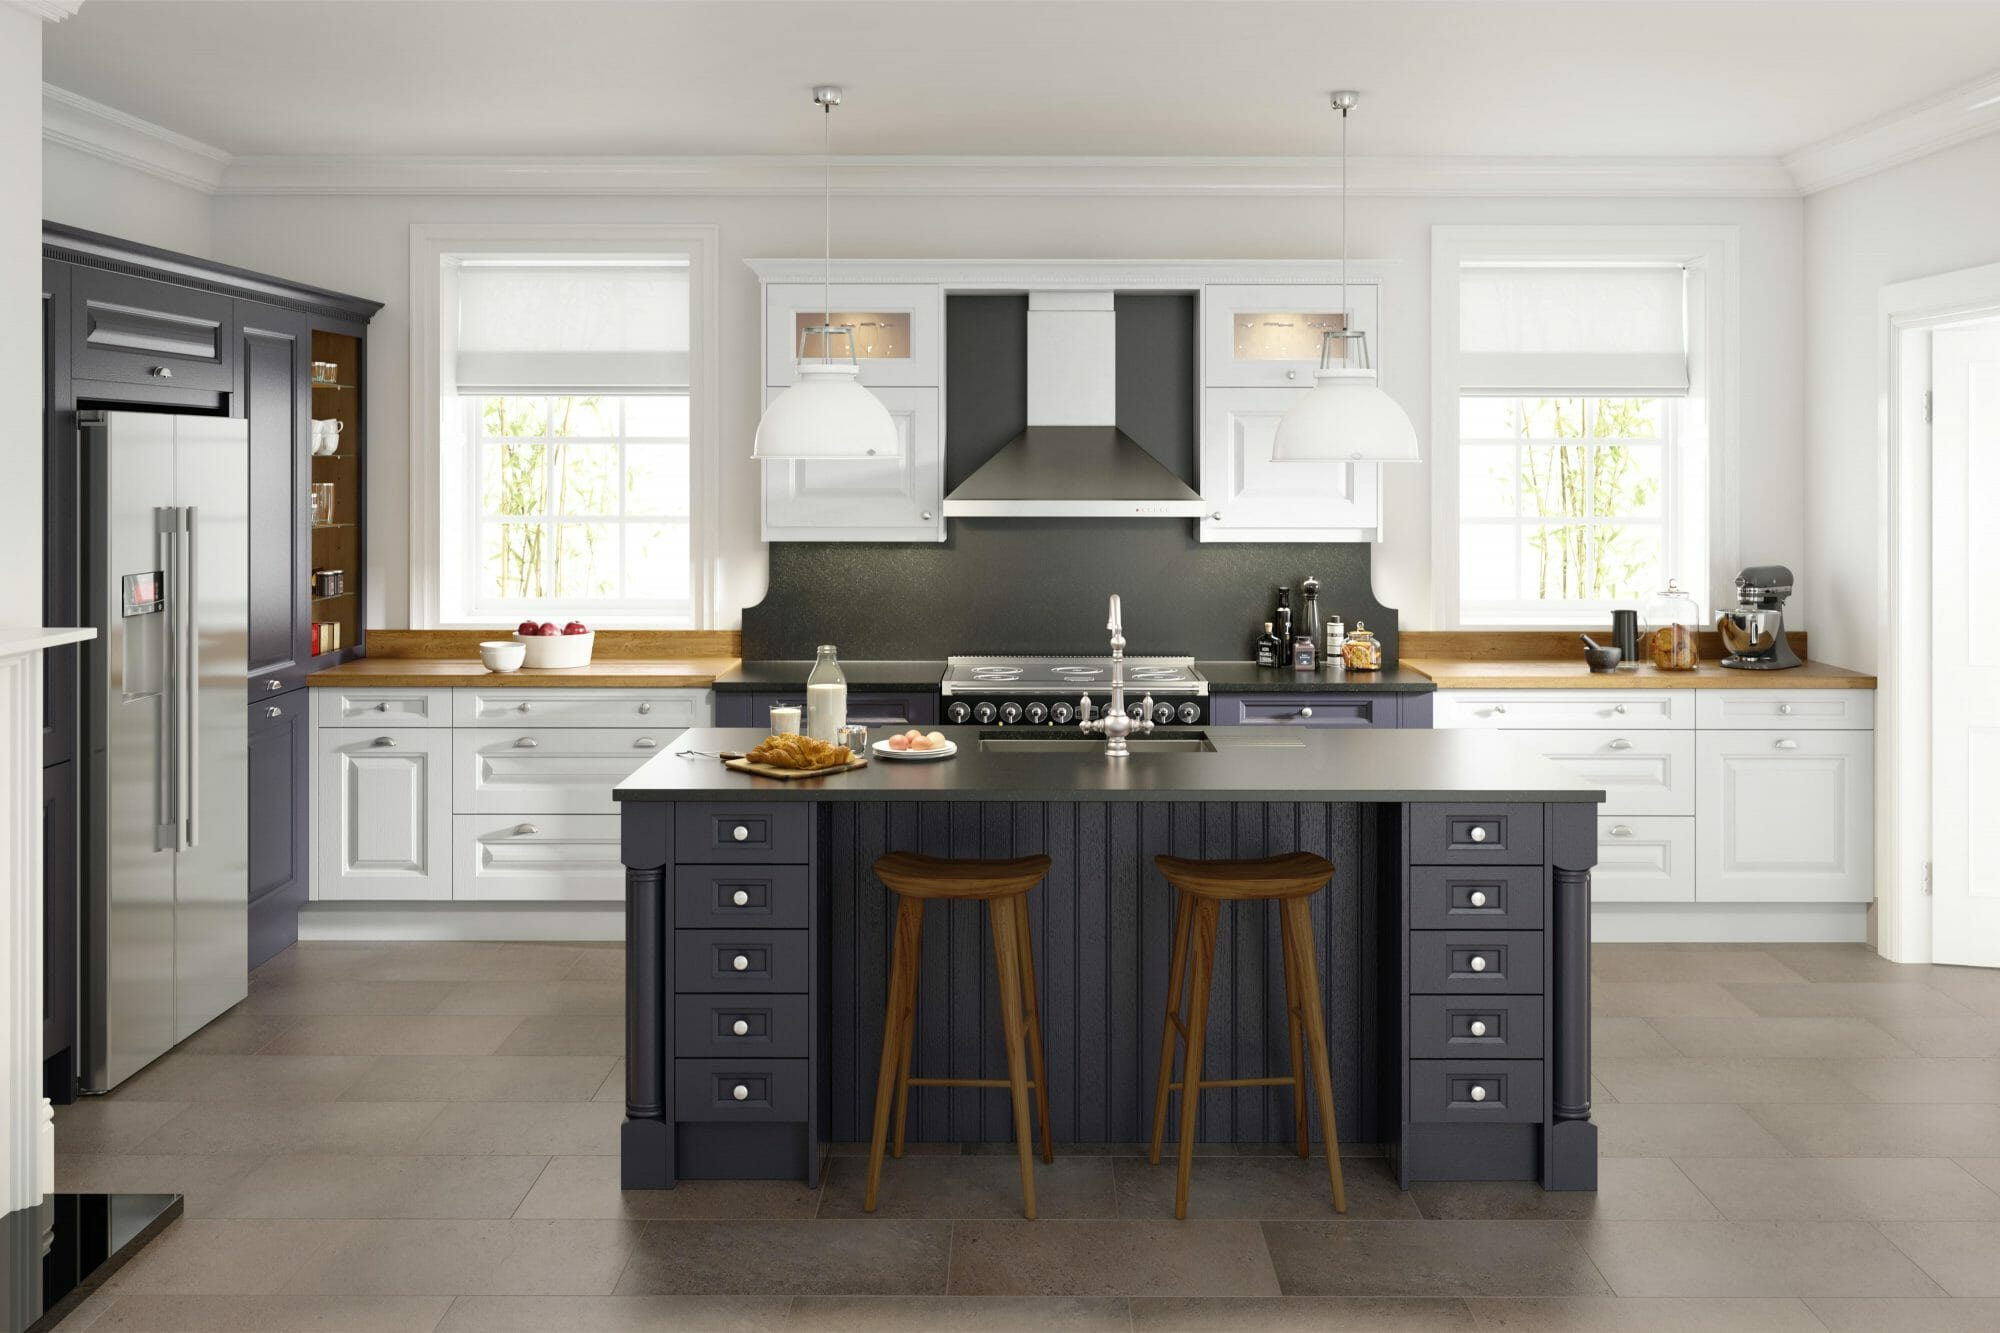 Fitted Kitchens Birmingham Mastercraft Fitted Kitchens Birmingham